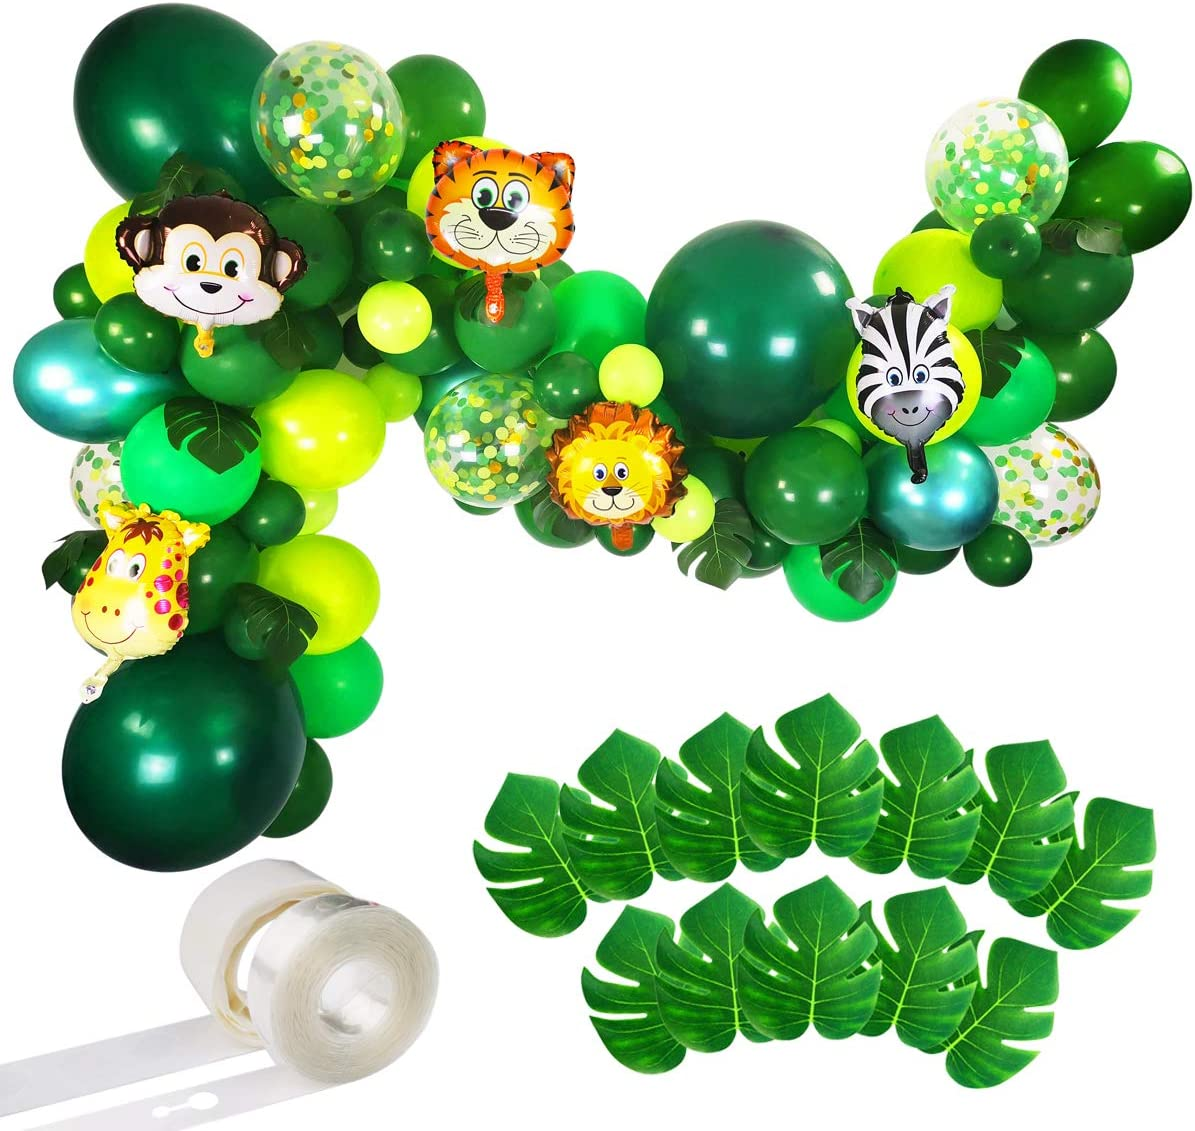 Amazon Com Jungle Party Balloons Garland Kit 110pcs Latex Balloons Animal Foil Confetti Balloon Arch Palm Leaves Set For Jungle Theme Baby Shower Party Decorations Safari Woodland Birthday Party Supplies Toys